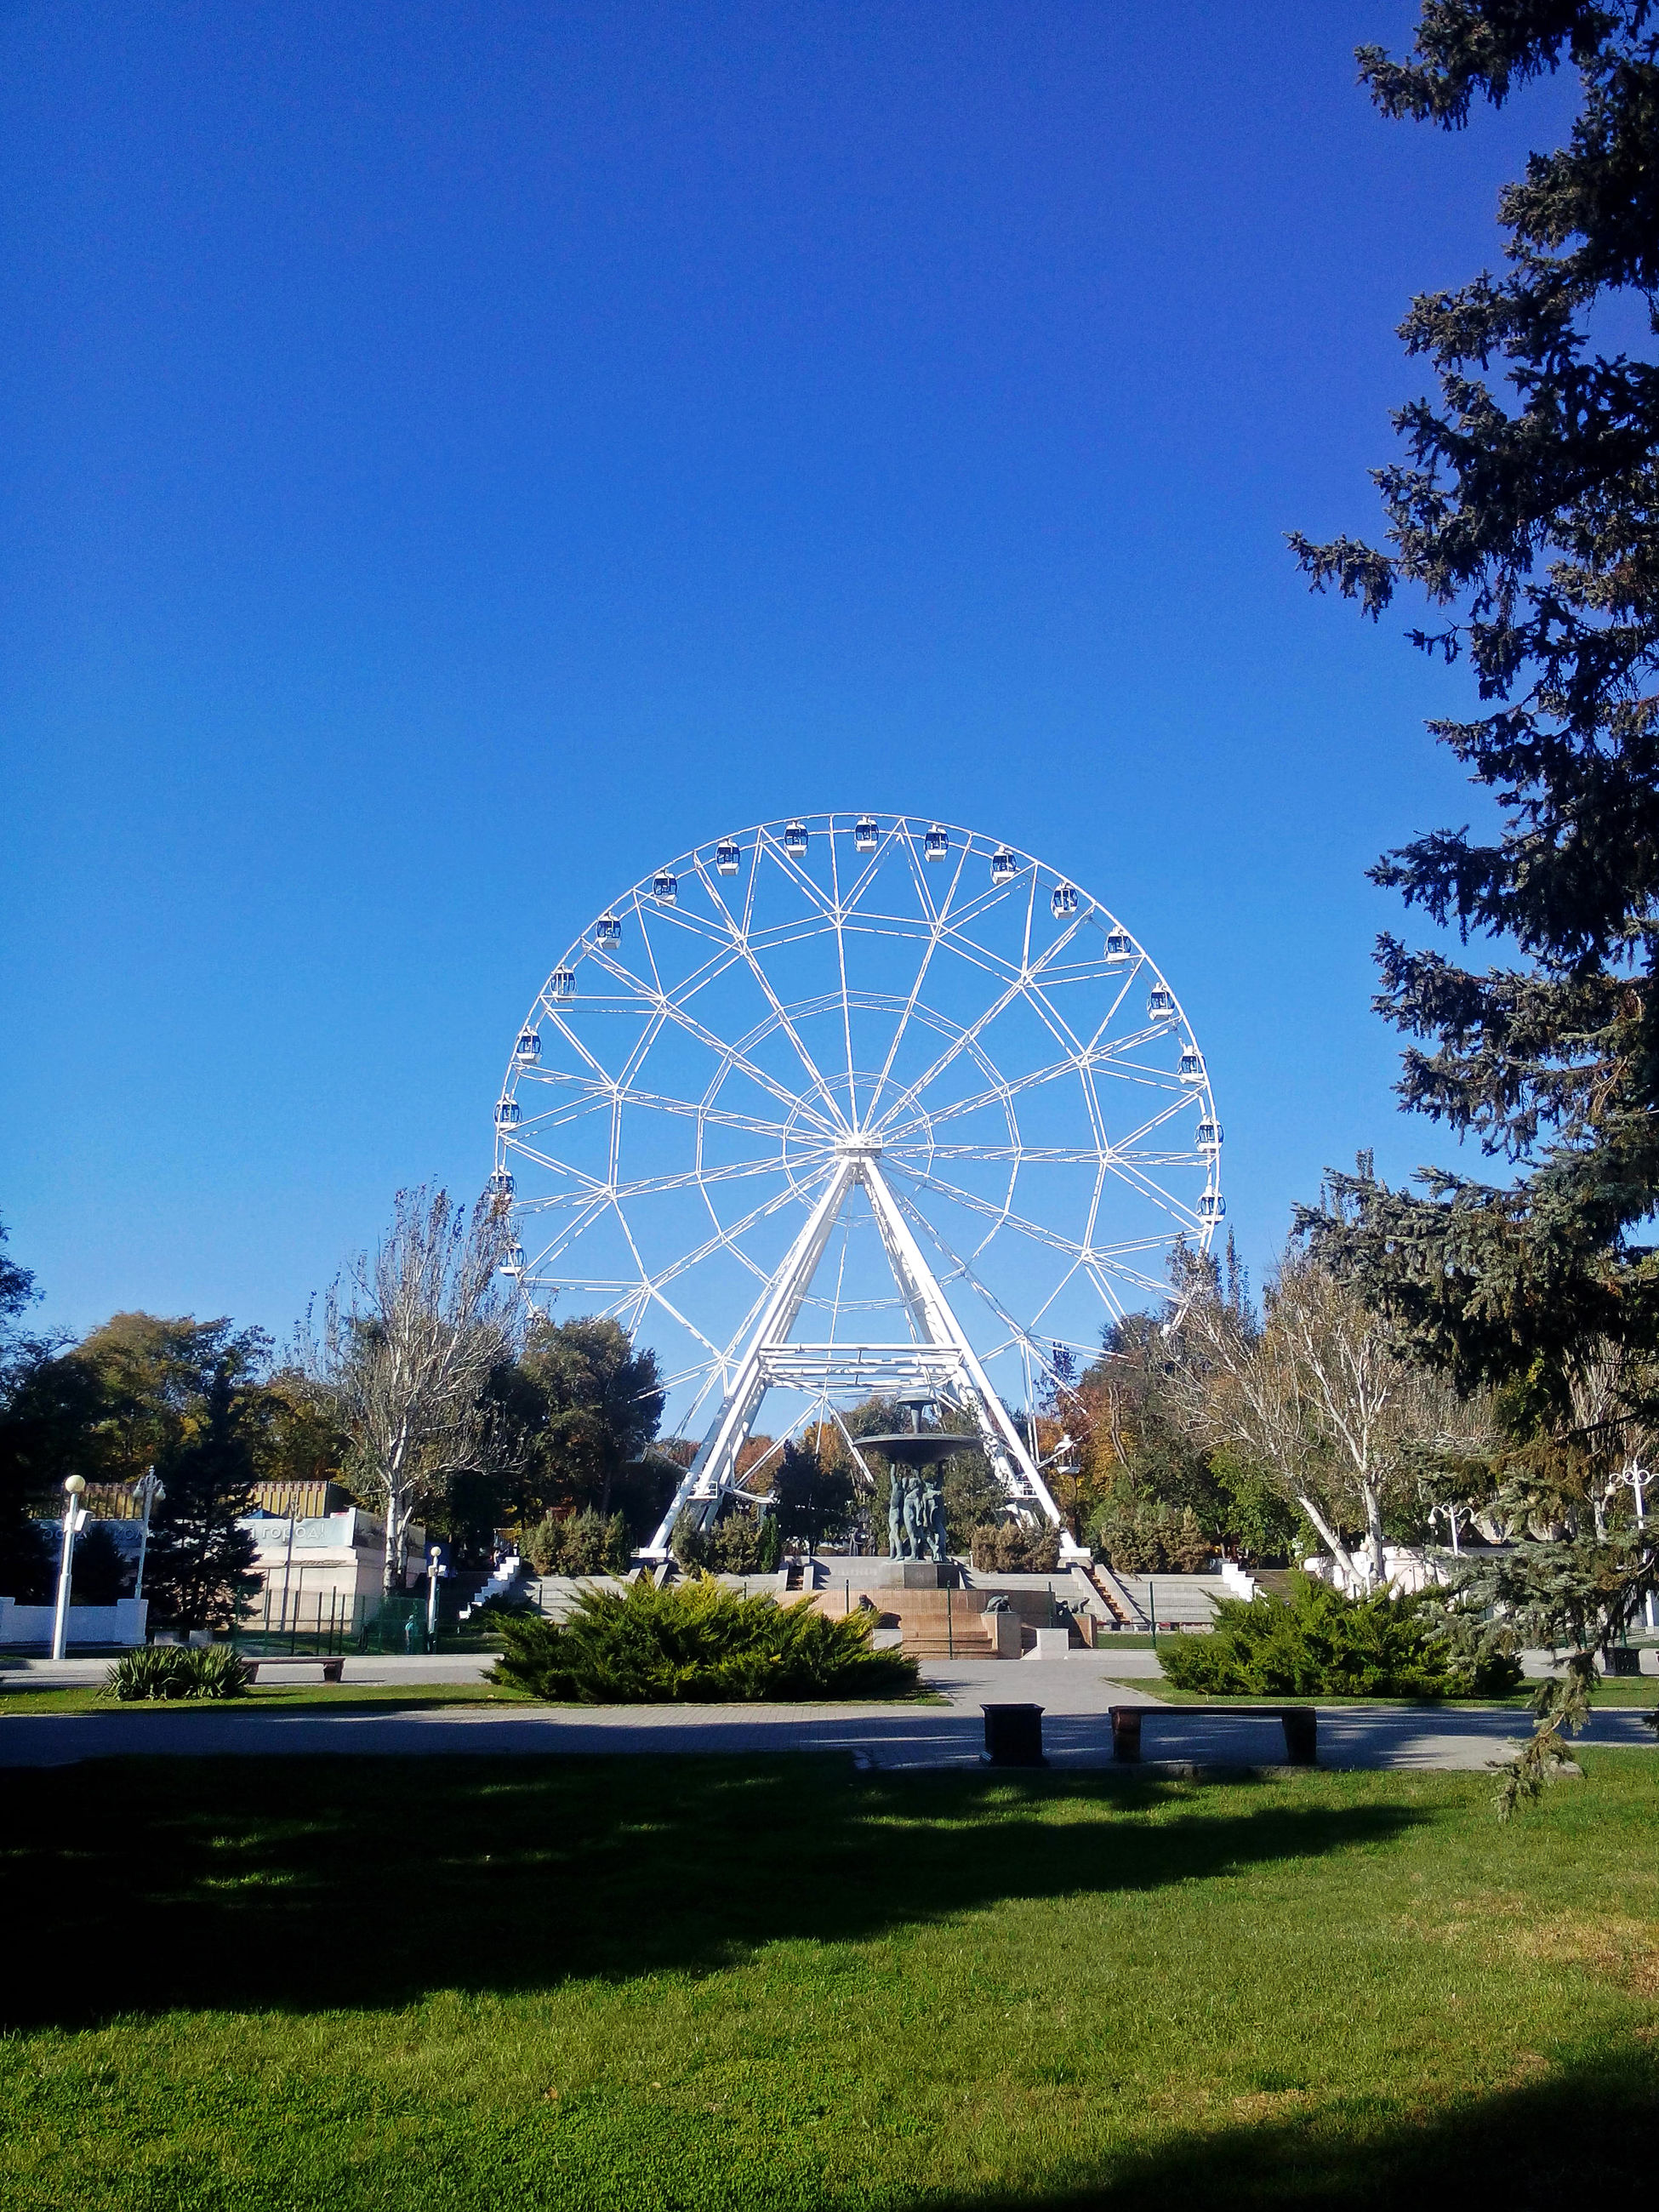 blue, sky, clear sky, outdoors, amusement park, tree, no people, ferris wheel, nature, architecture, day, astronomy